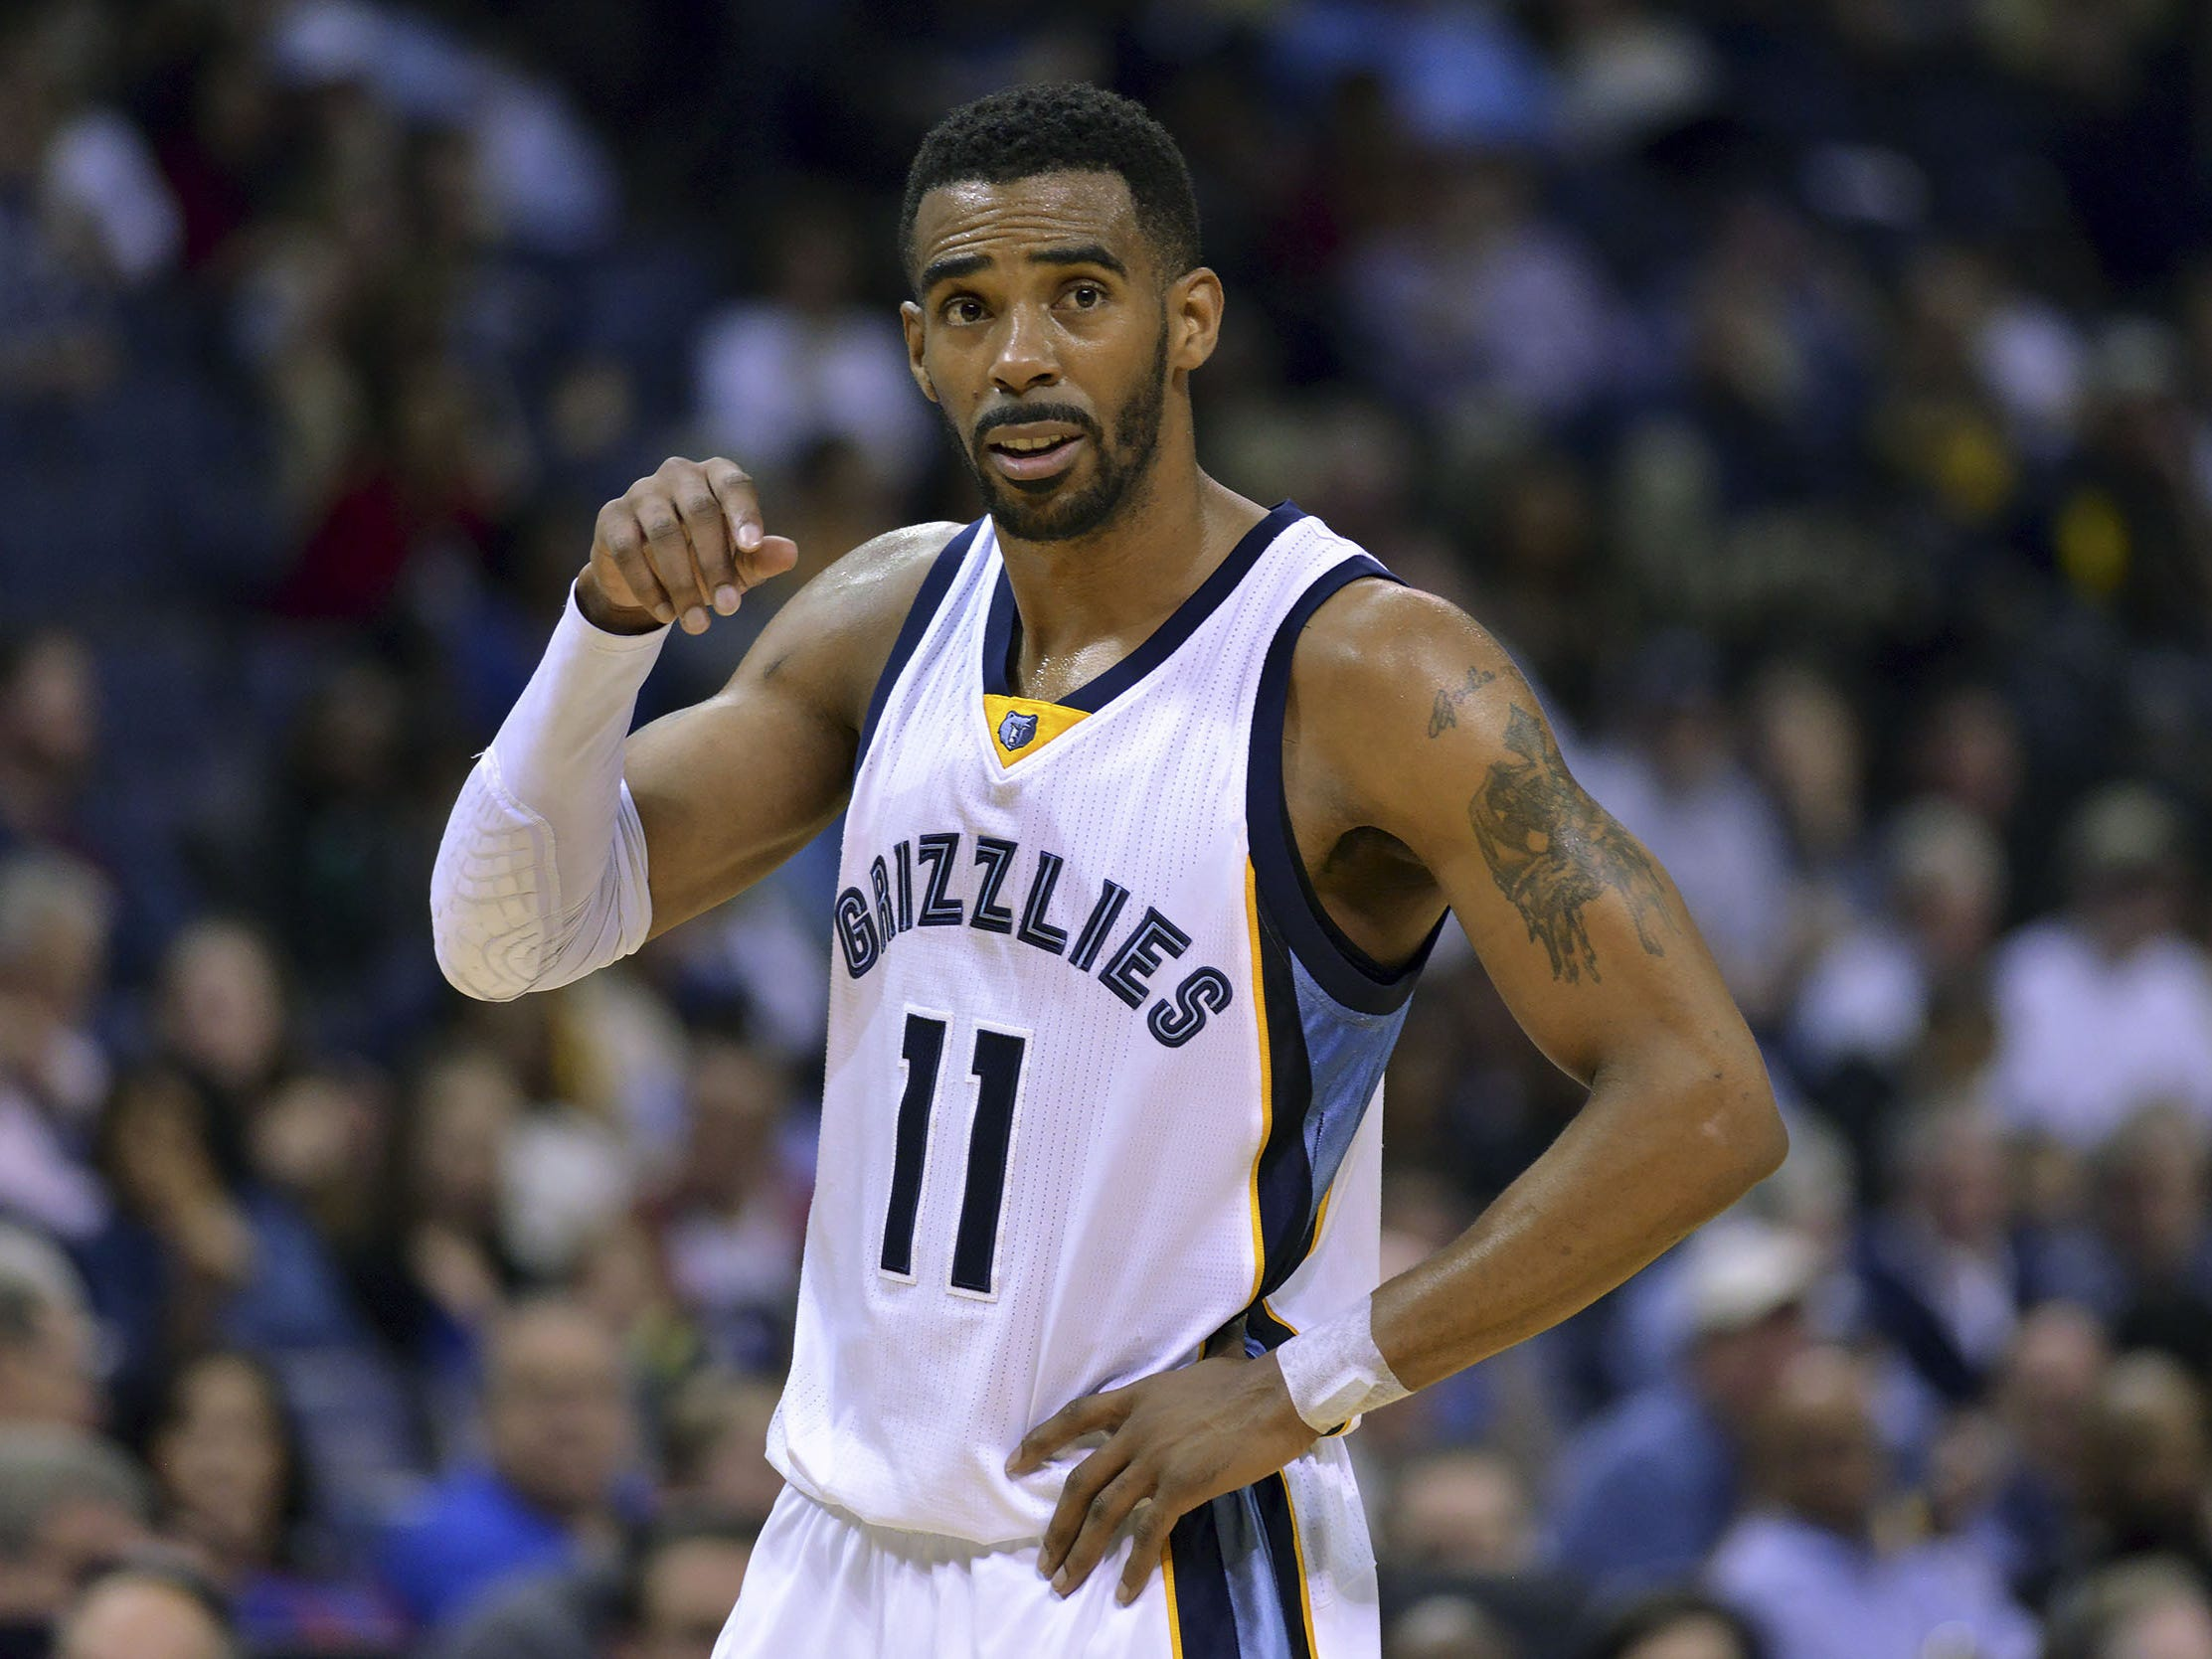 FILE - In this Monday, March 30, 2015 file photo, Memphis Grizzlies guard Mike Conley (11) plays in the first half of an NBA basketball game against the Sacramento Kings in Memphis, Tenn. Mike Conley should be resting right now, letting his sprained right foot heal. But he won?t, no time. It?s the playoffs. So the Grizzlies guard is playing even though sharp pain shoots through his foot when he runs or jumps, just not enough to keep him on the bench, Tuesday, April 21, 2015. (AP Photo/Brandon Dill, File)